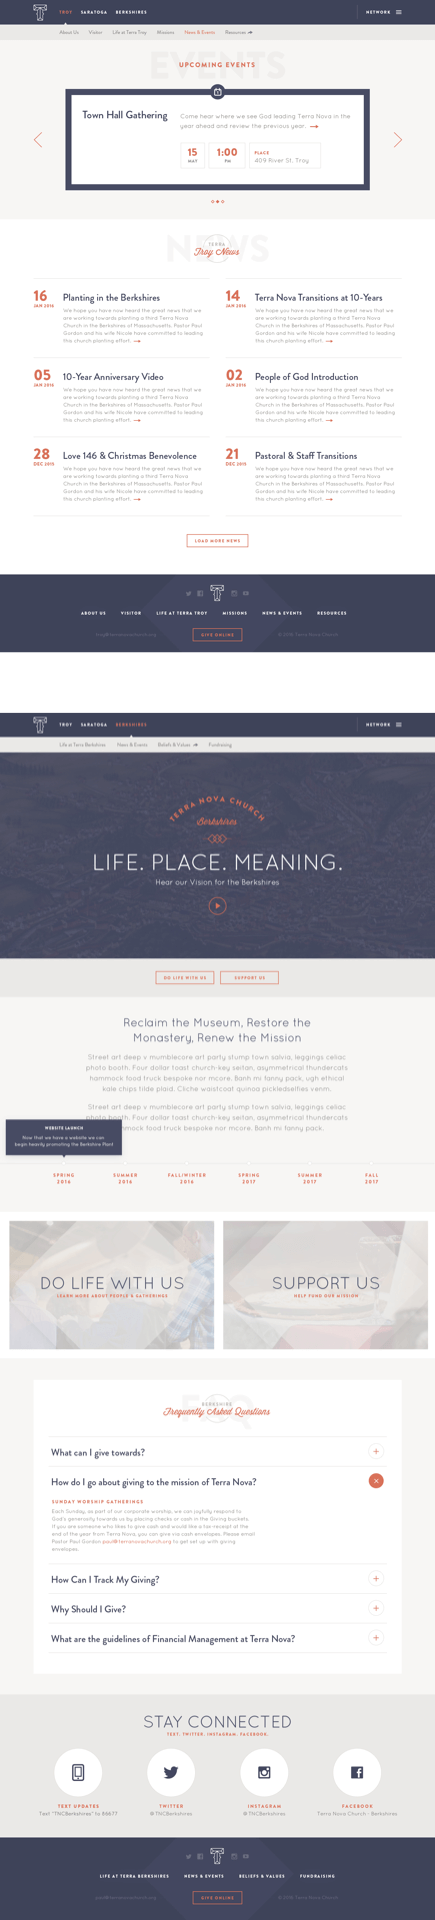 Screenshots of Terra Nova Church website